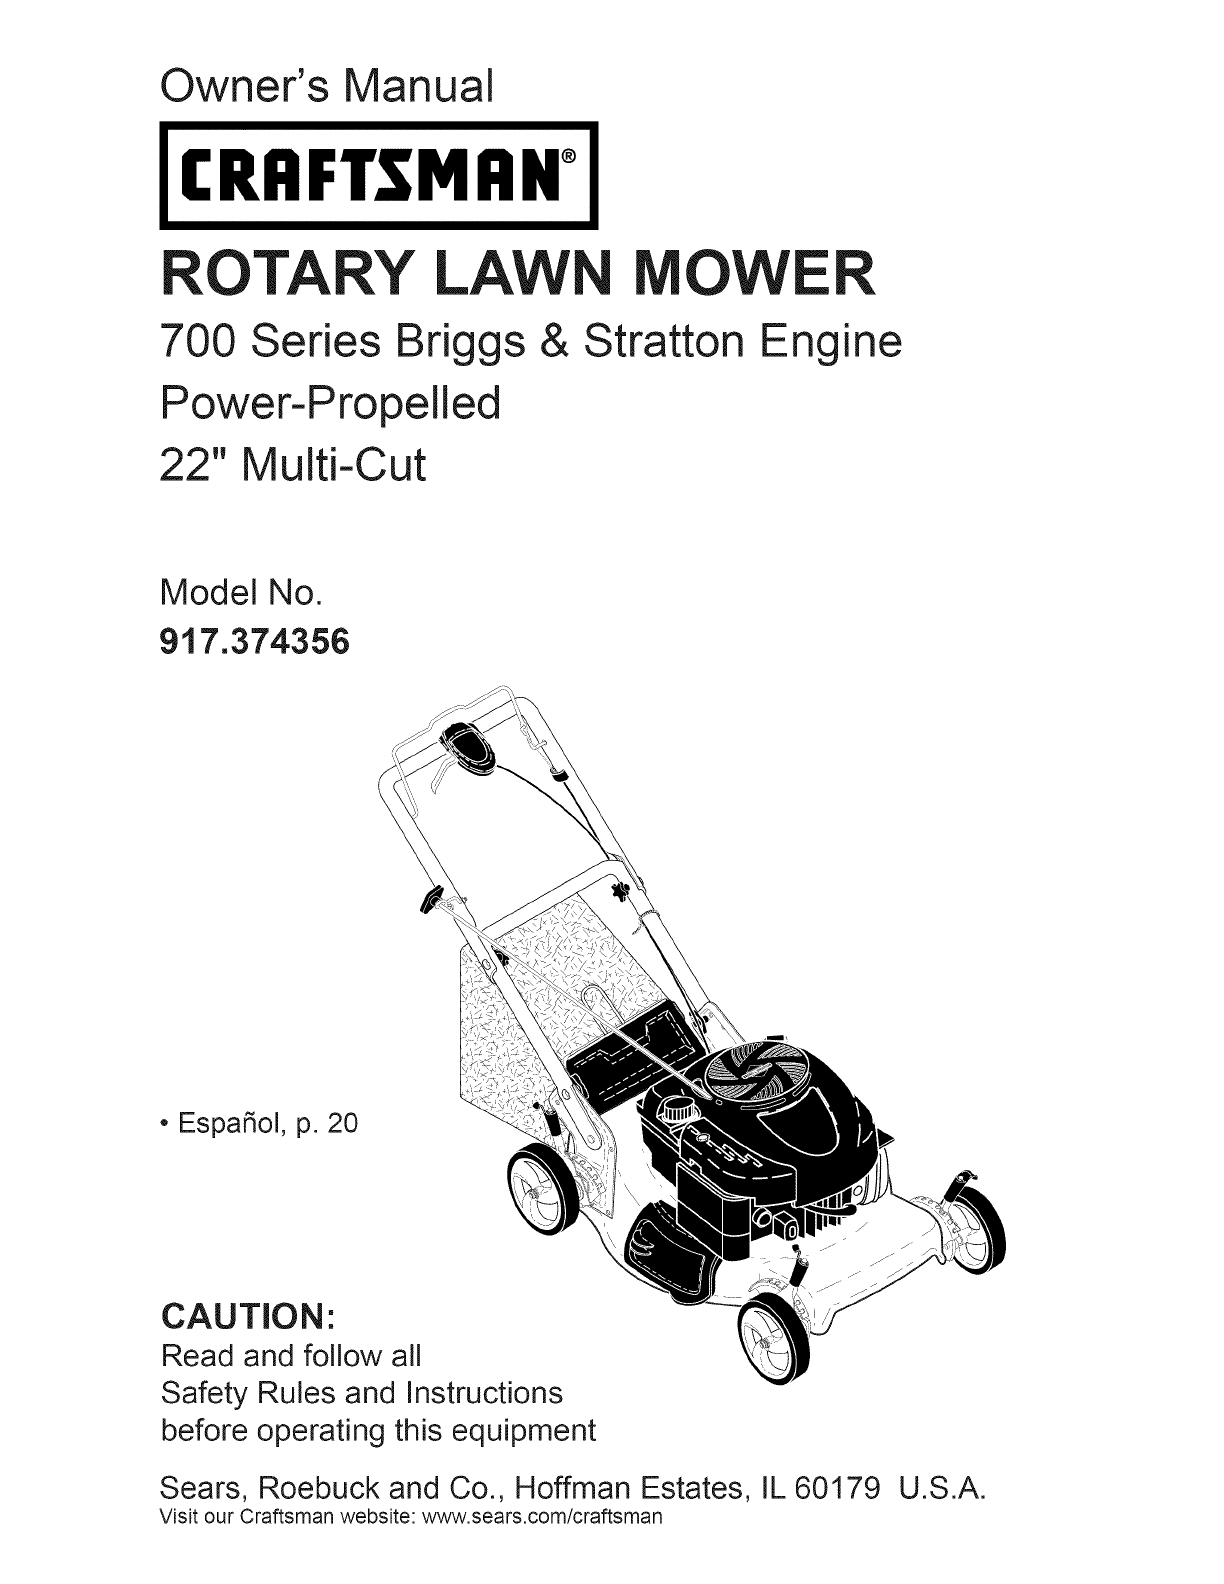 craftsman lawn mower 917 374356 user guide manualsonline com rh phone manualsonline com Craftsman Snow Blower Parts Manuals Craftsman Model 917